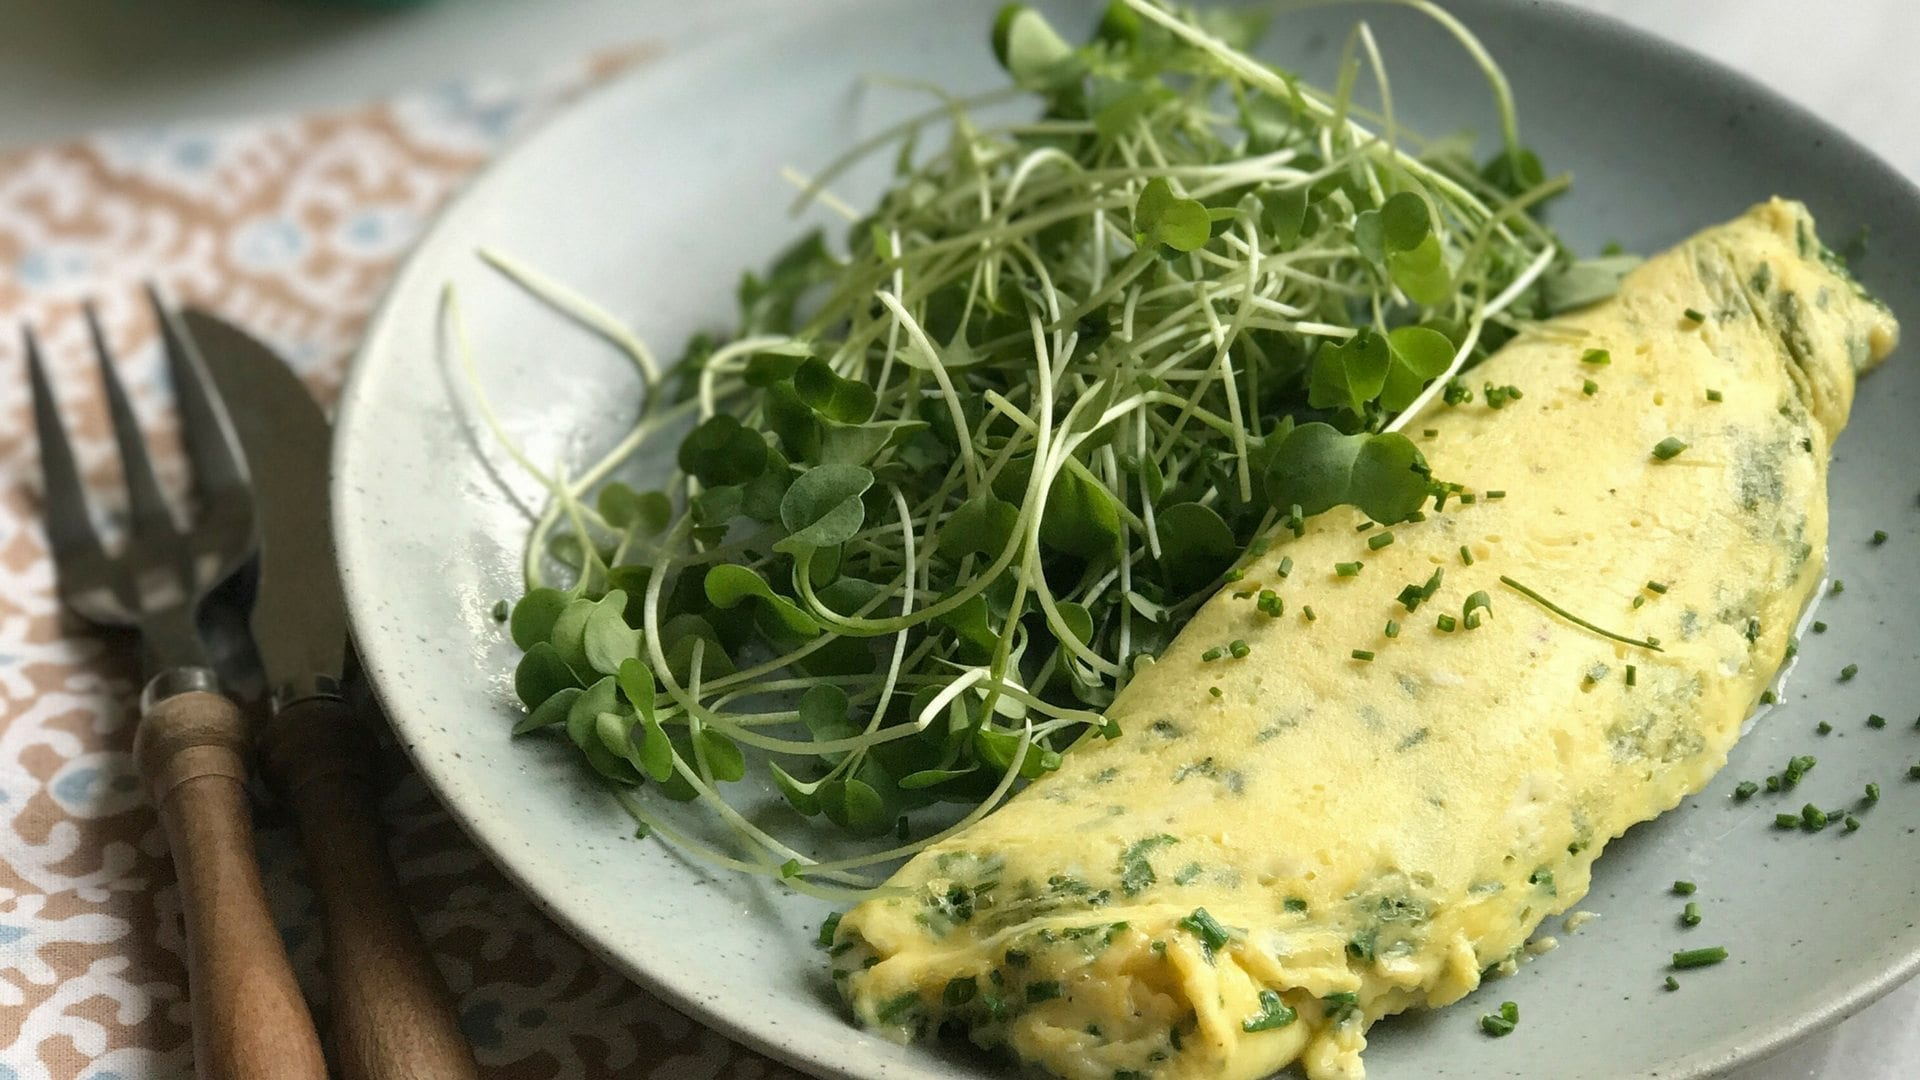 chive, eggs, omelette, french cooking, recipes, meal ideas, quick and easy